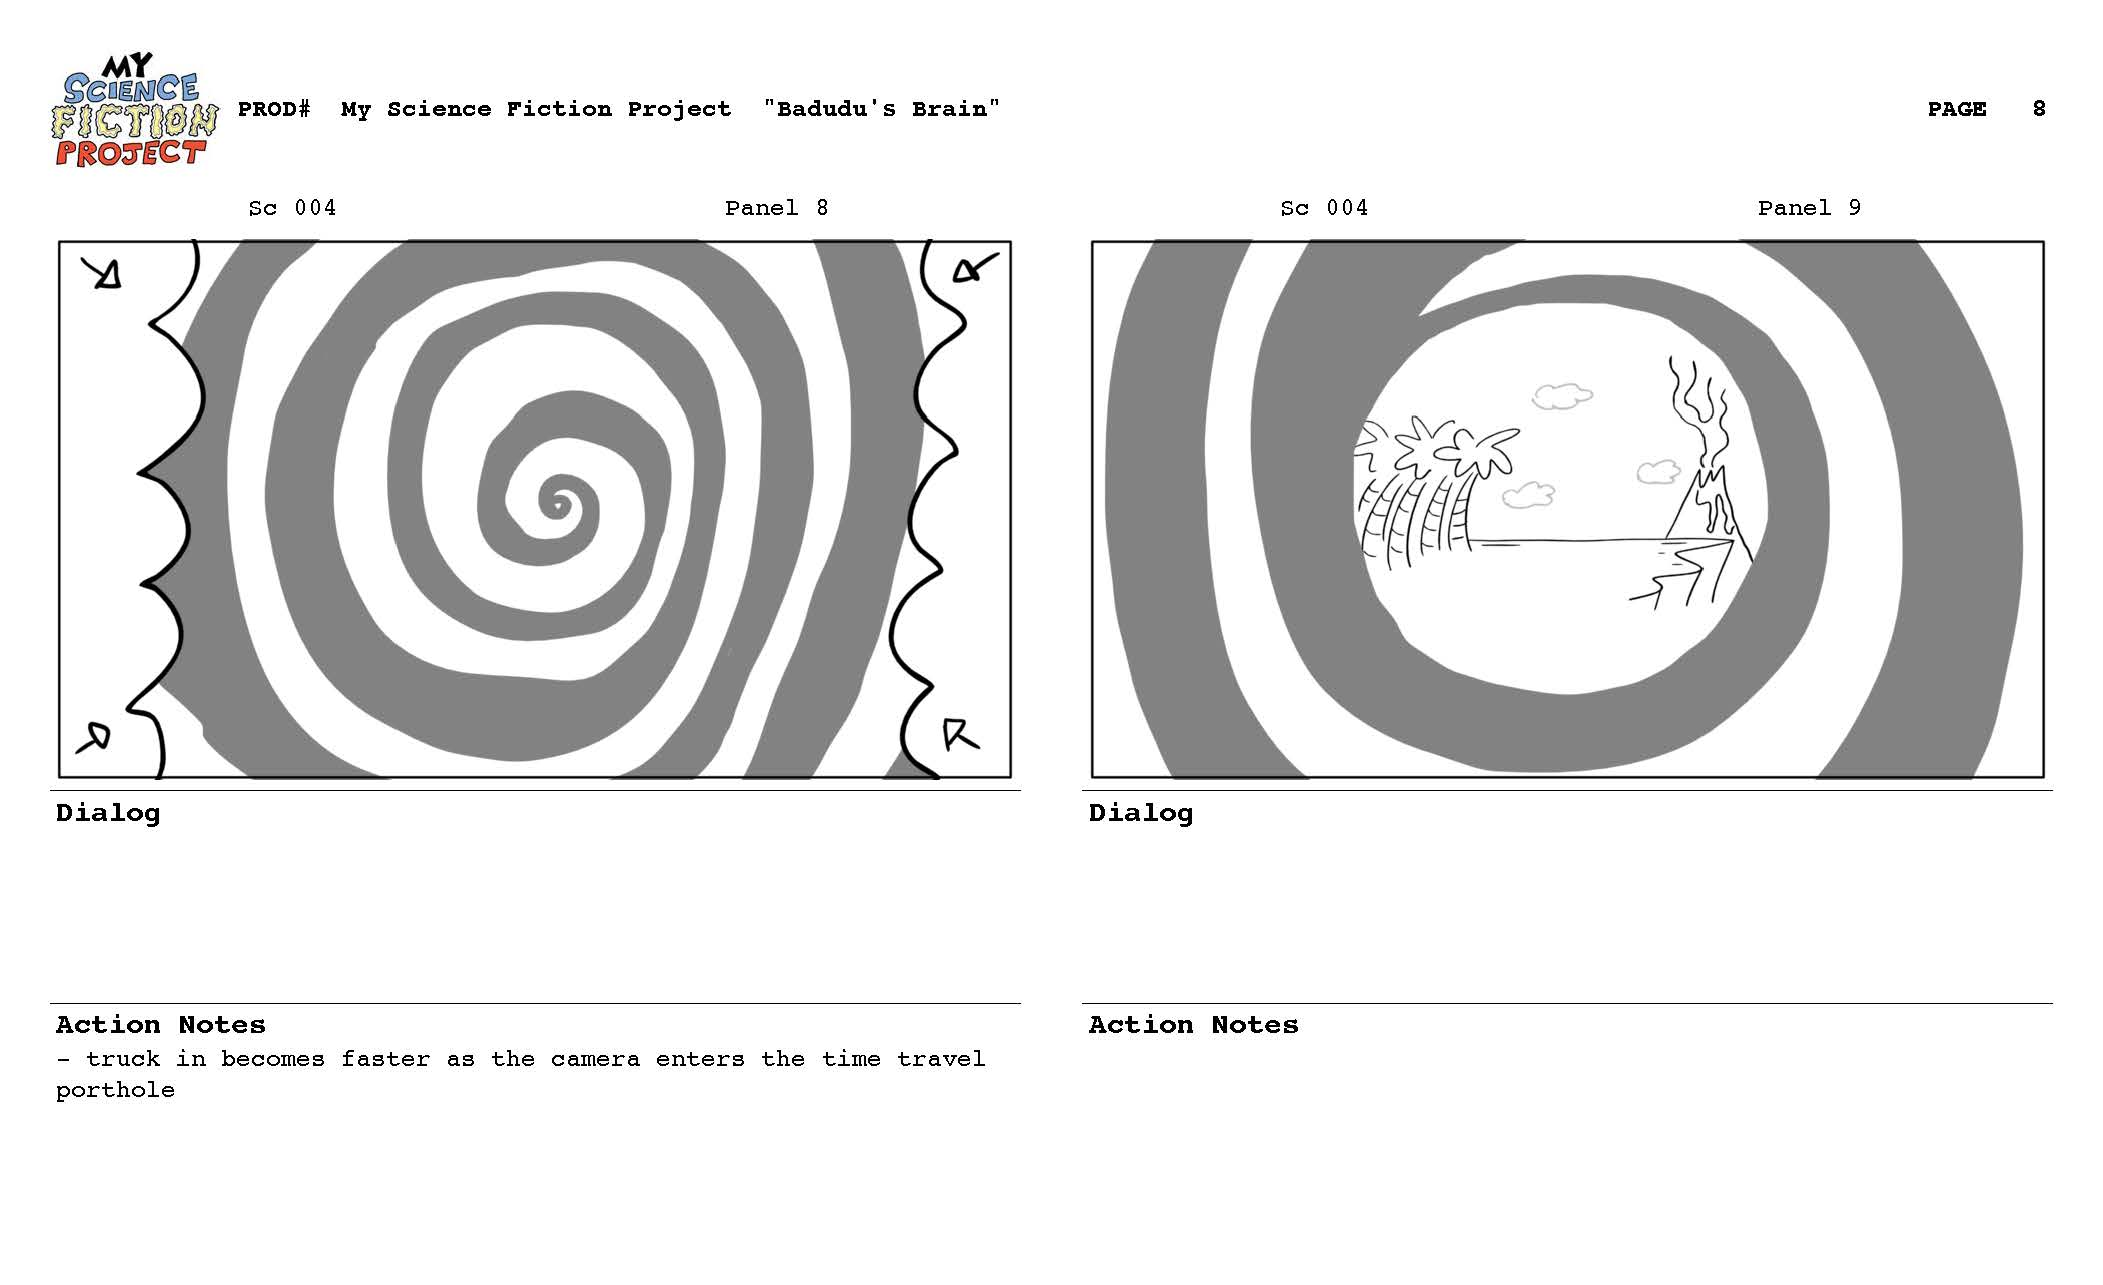 My_Science_Fiction_Project_SB_083112_reduced_Page_008.jpg